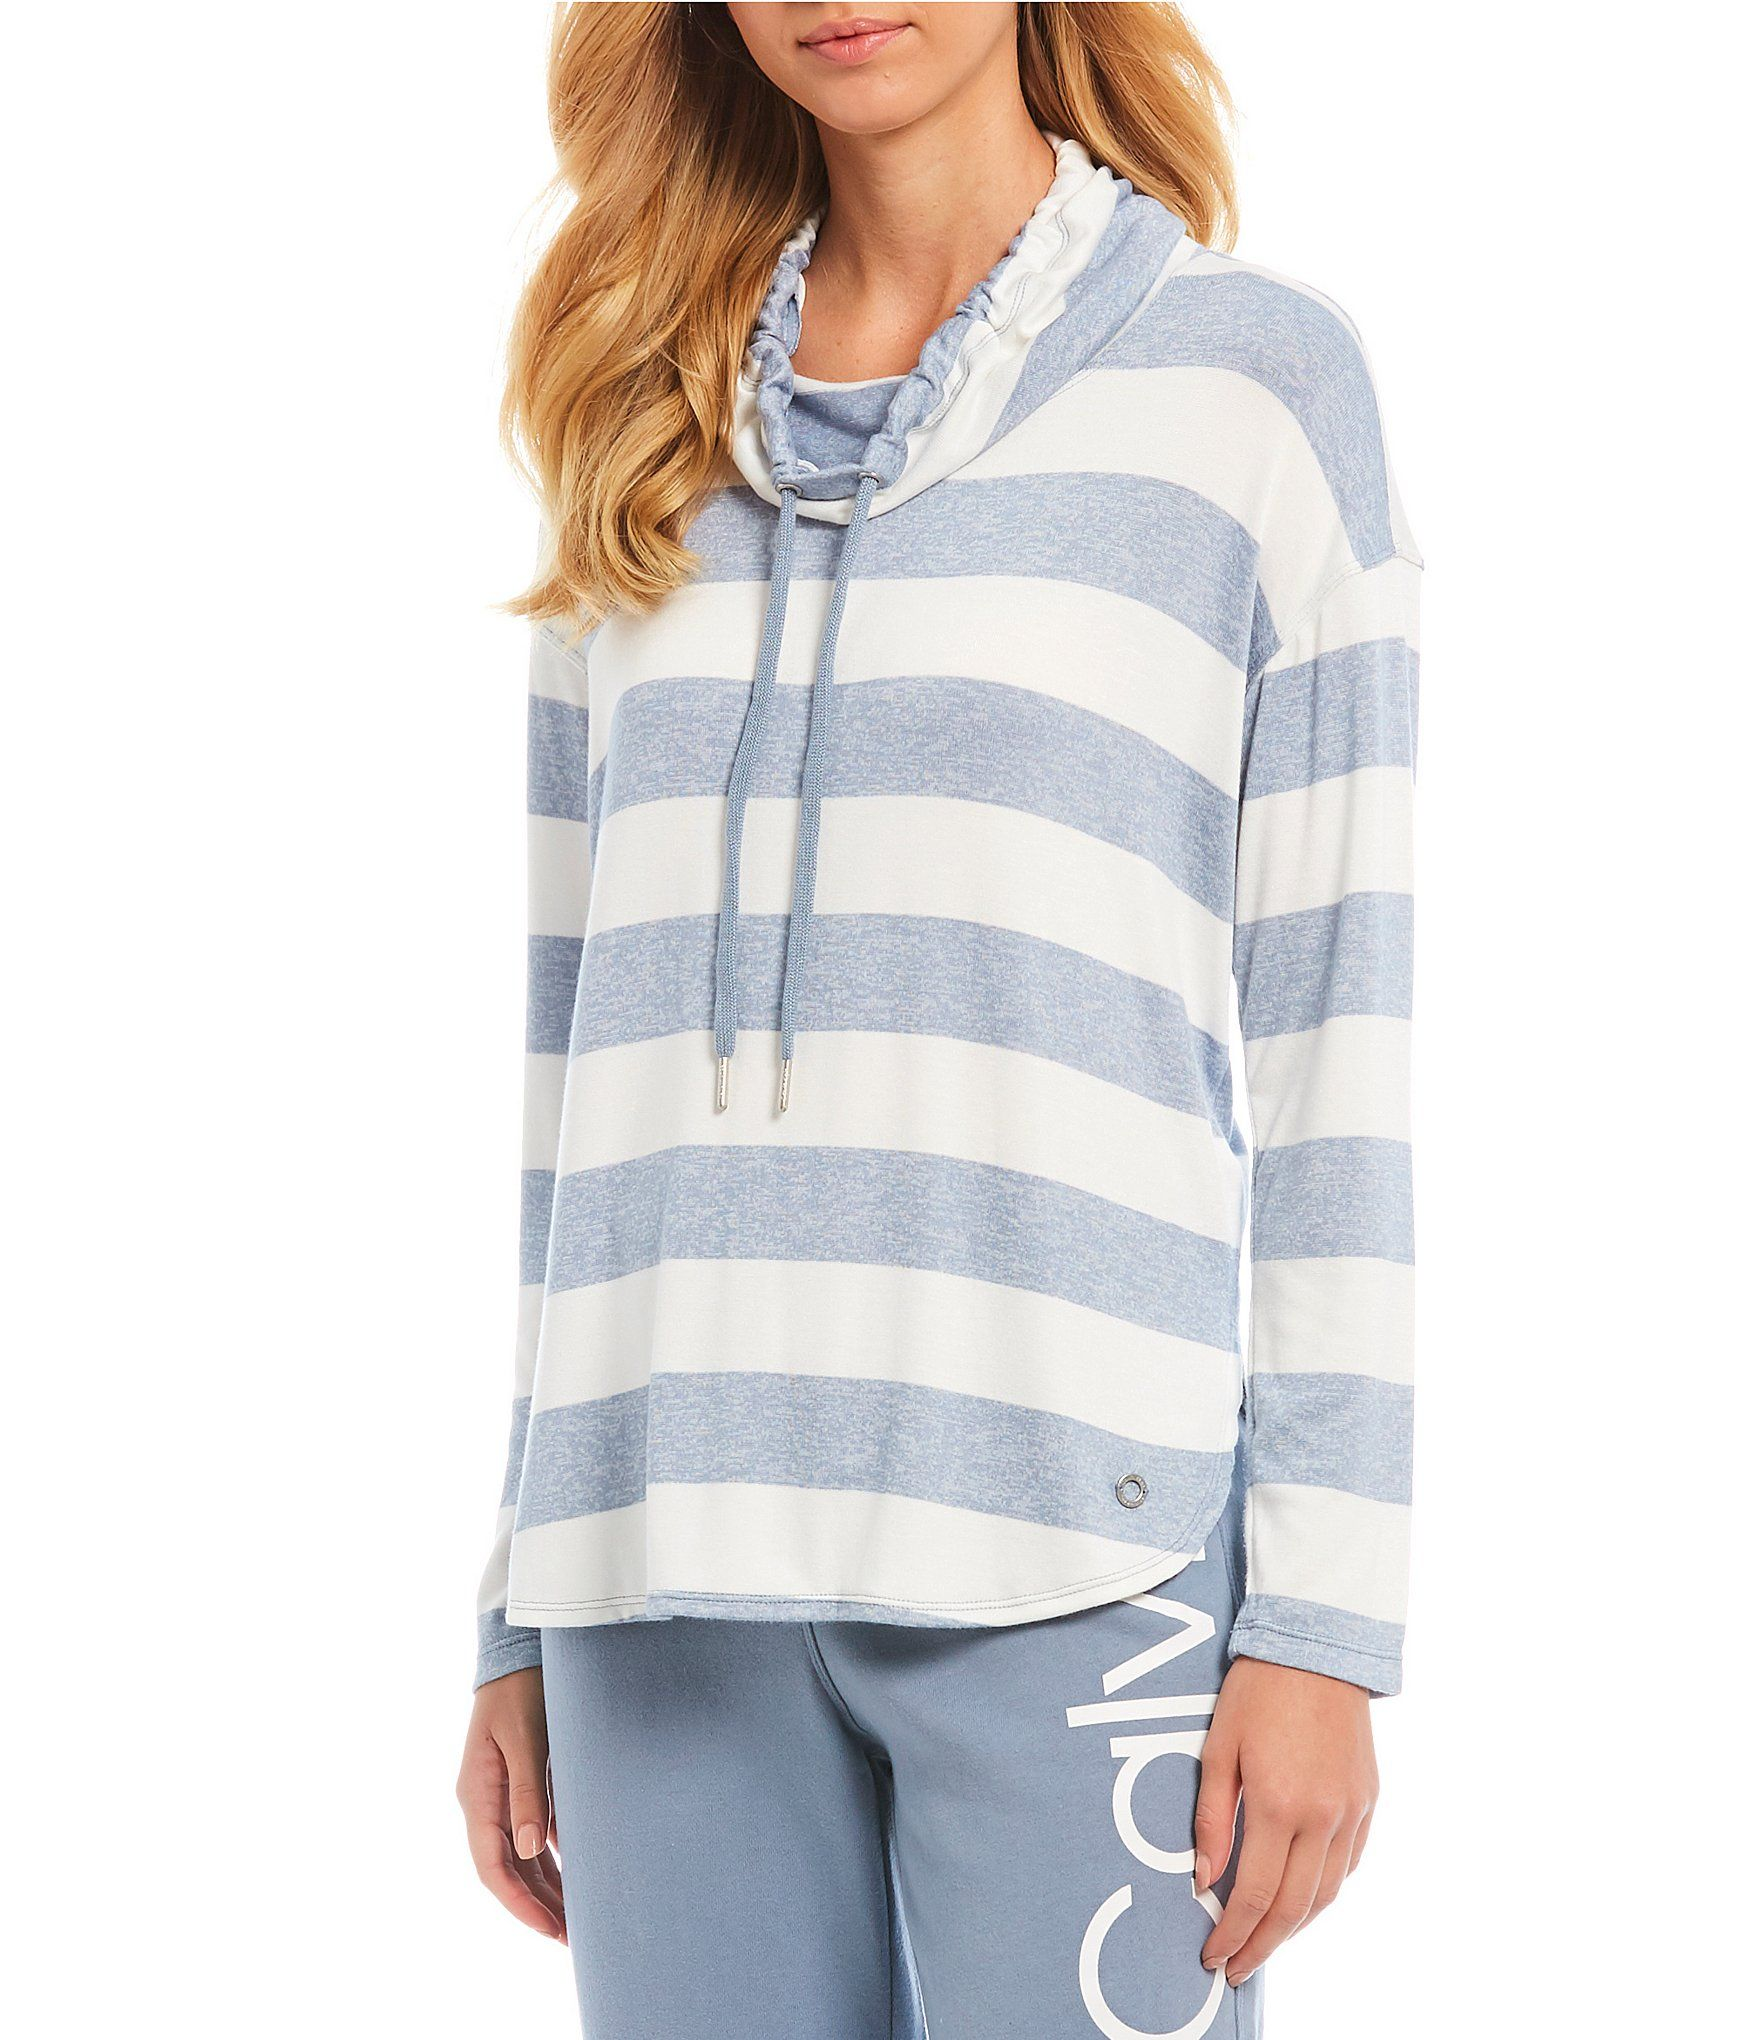 Calvin Klein Performance Rugby Stripe Long Sleeve Cowl Neck Pullover Top | Dillard's #stripedlongsleevetops